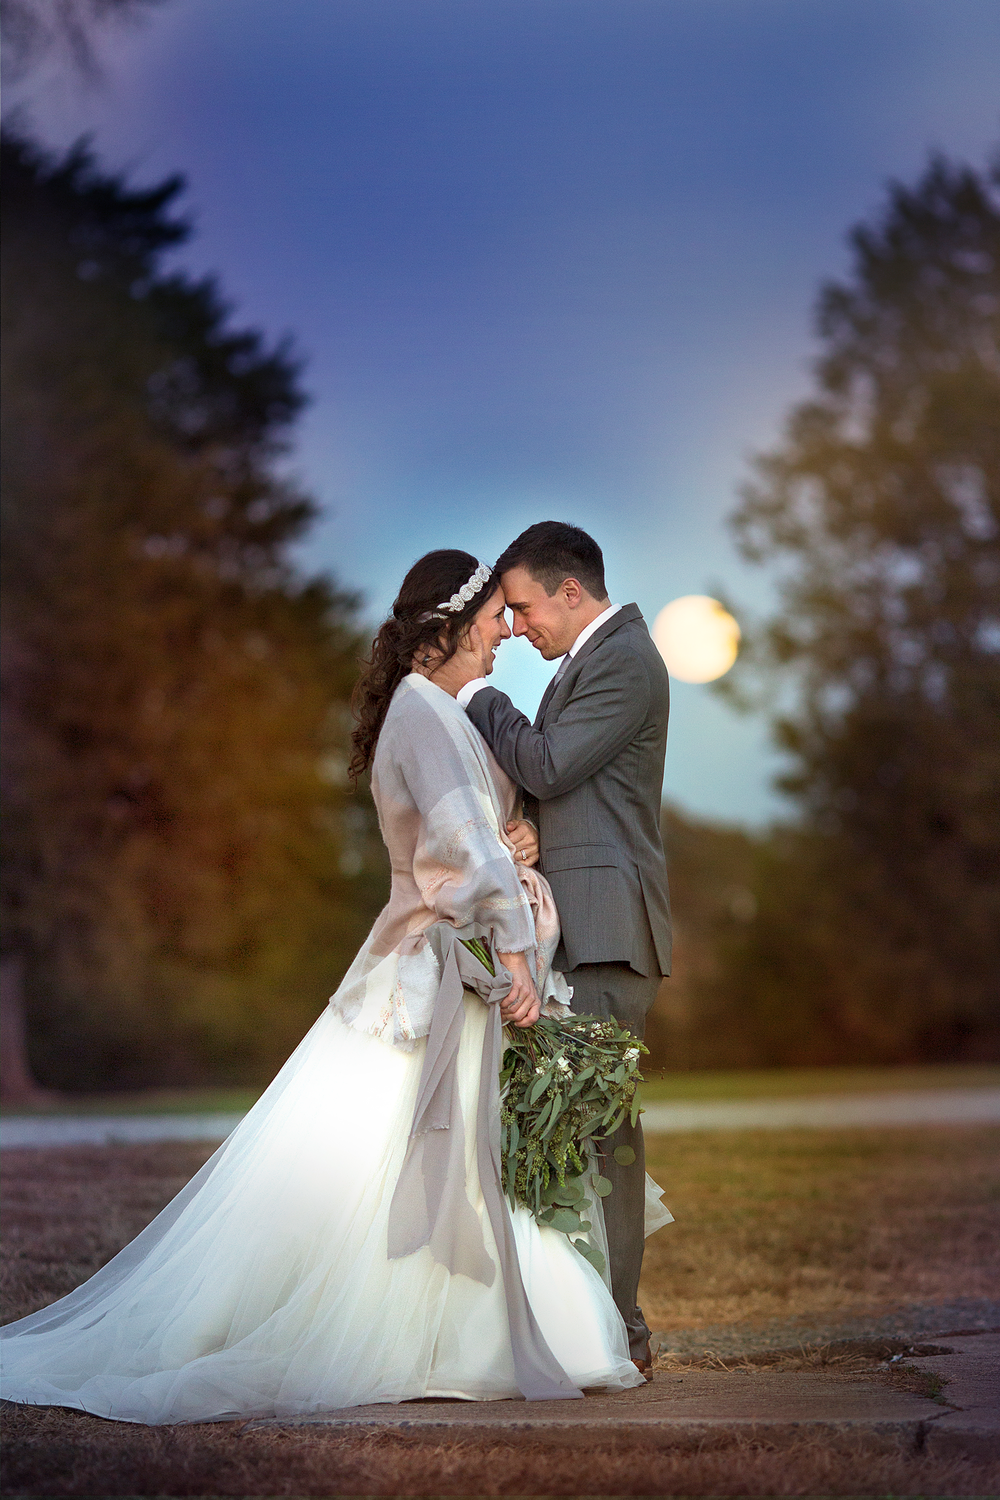 Charlottesville and Lynchburg Wedding Photographers || Ashley Eiban Photography || www.ashleyeiban.com